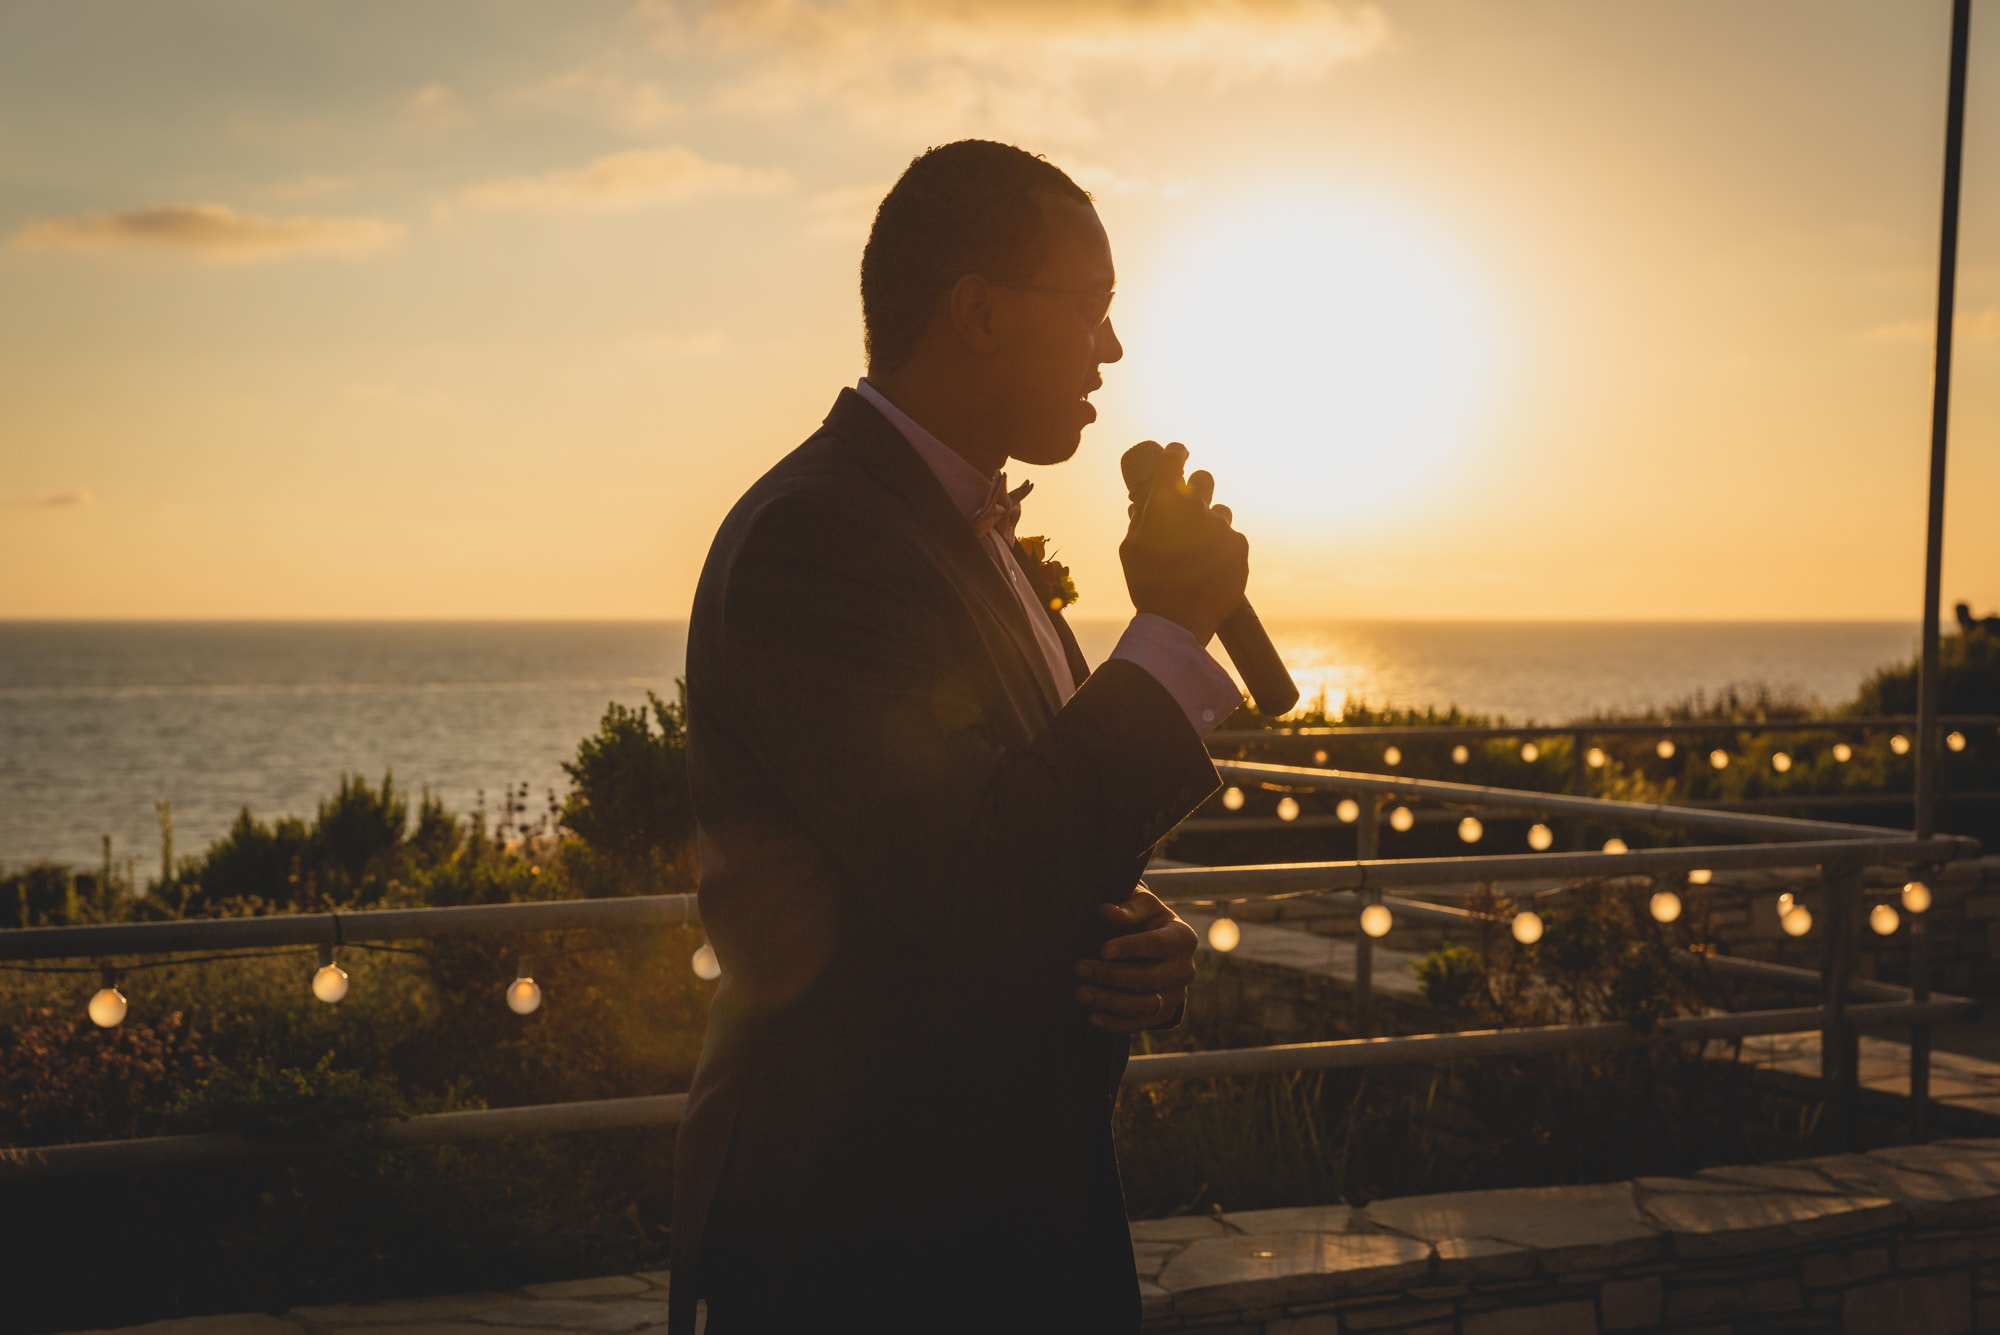 Last Minute Checklist: Things to Know Before Your Outdoor Wedding - The groom addressing his guests using a PA system.